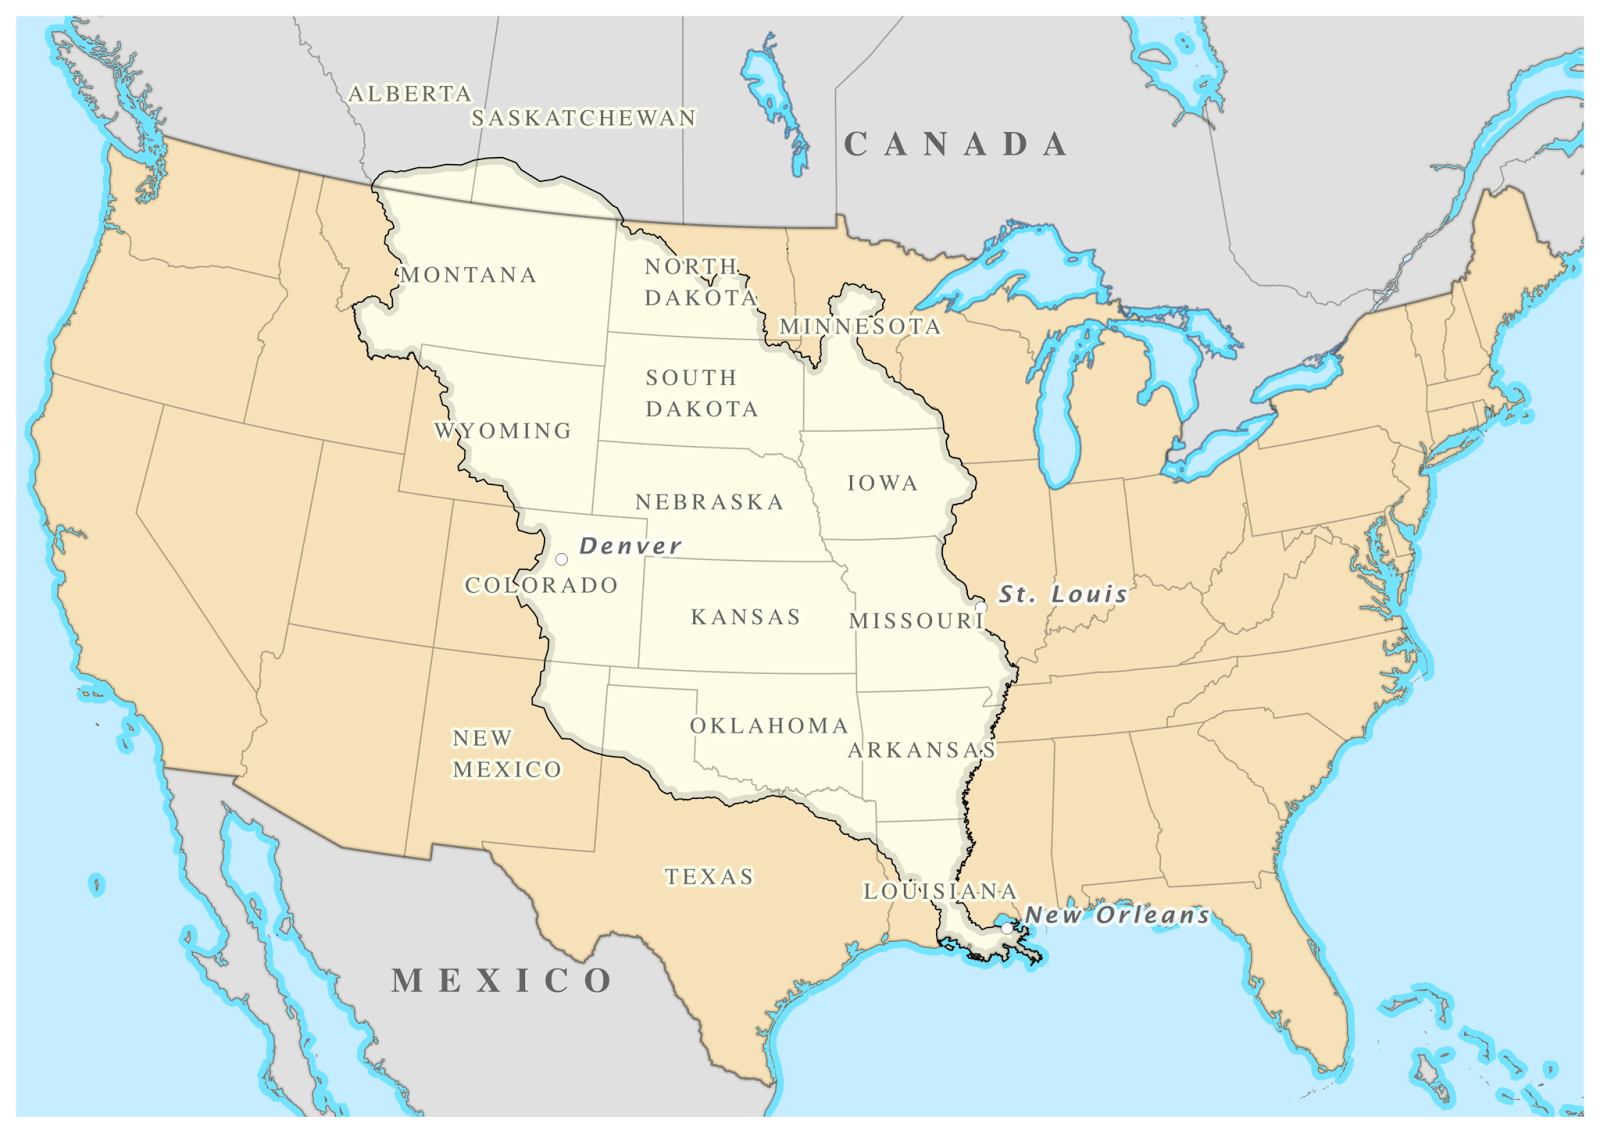 Territory of the Louisiana Purchase